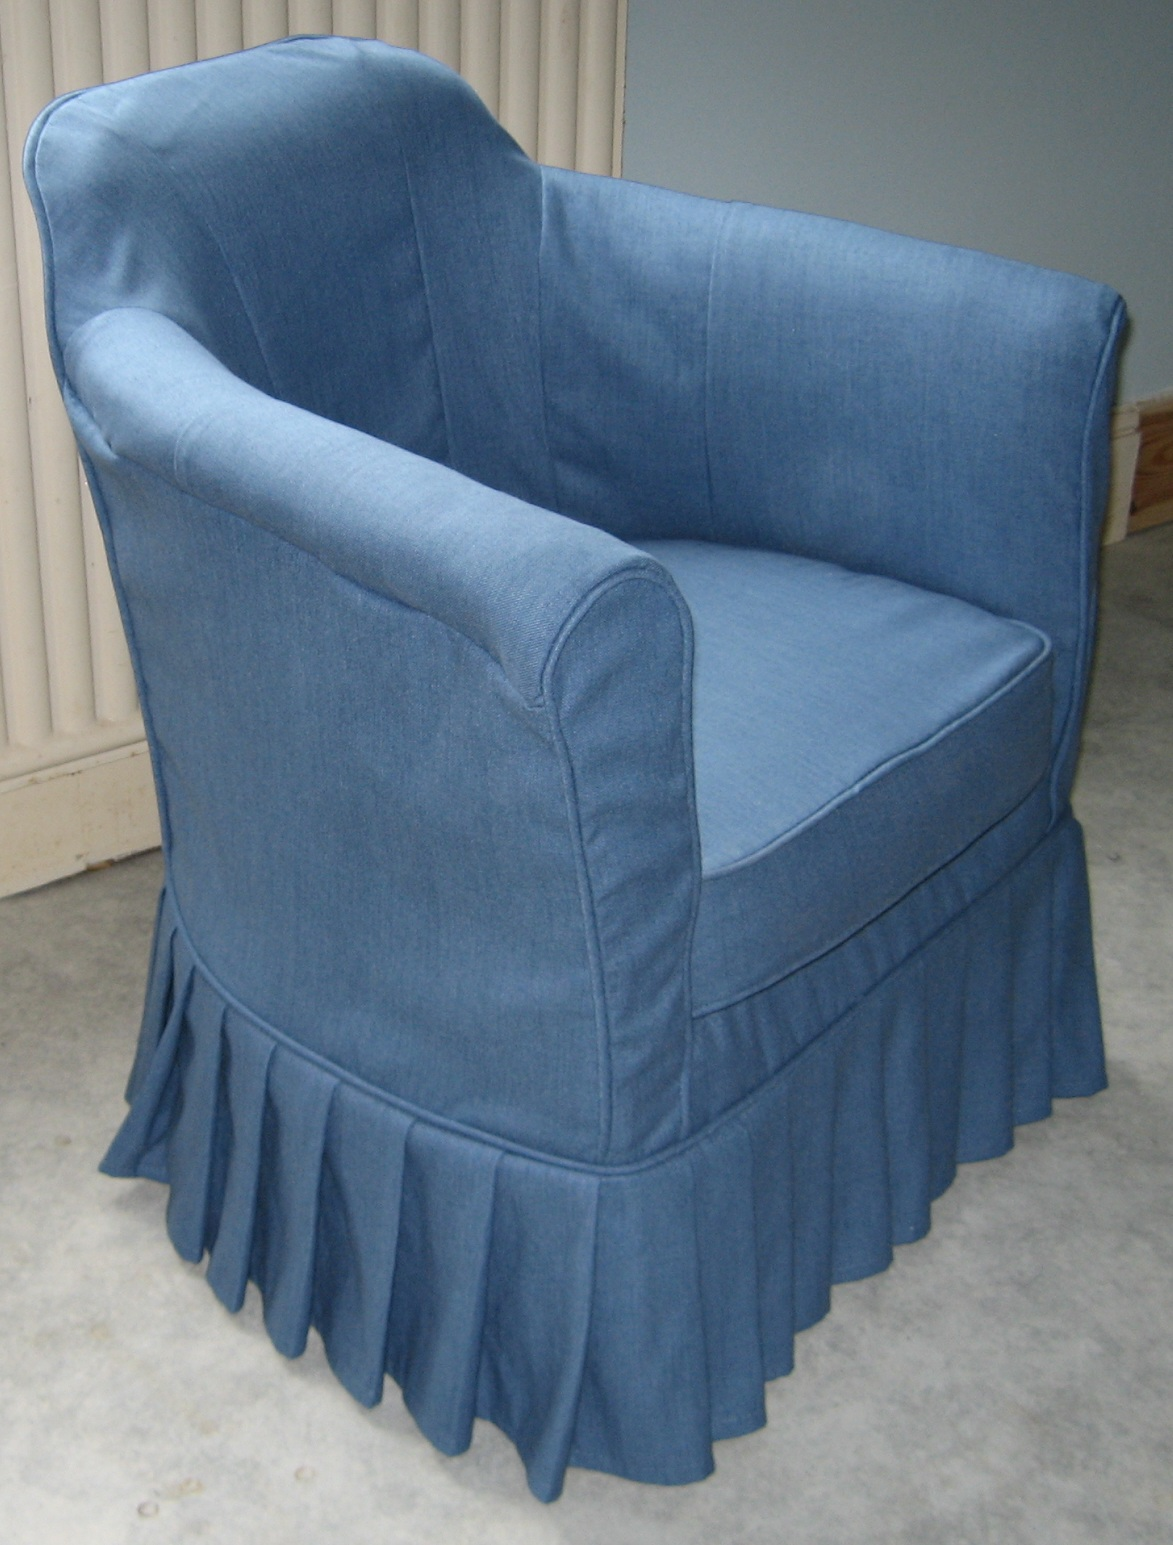 Tub Chair Slipcovers On Now Elegant Changes